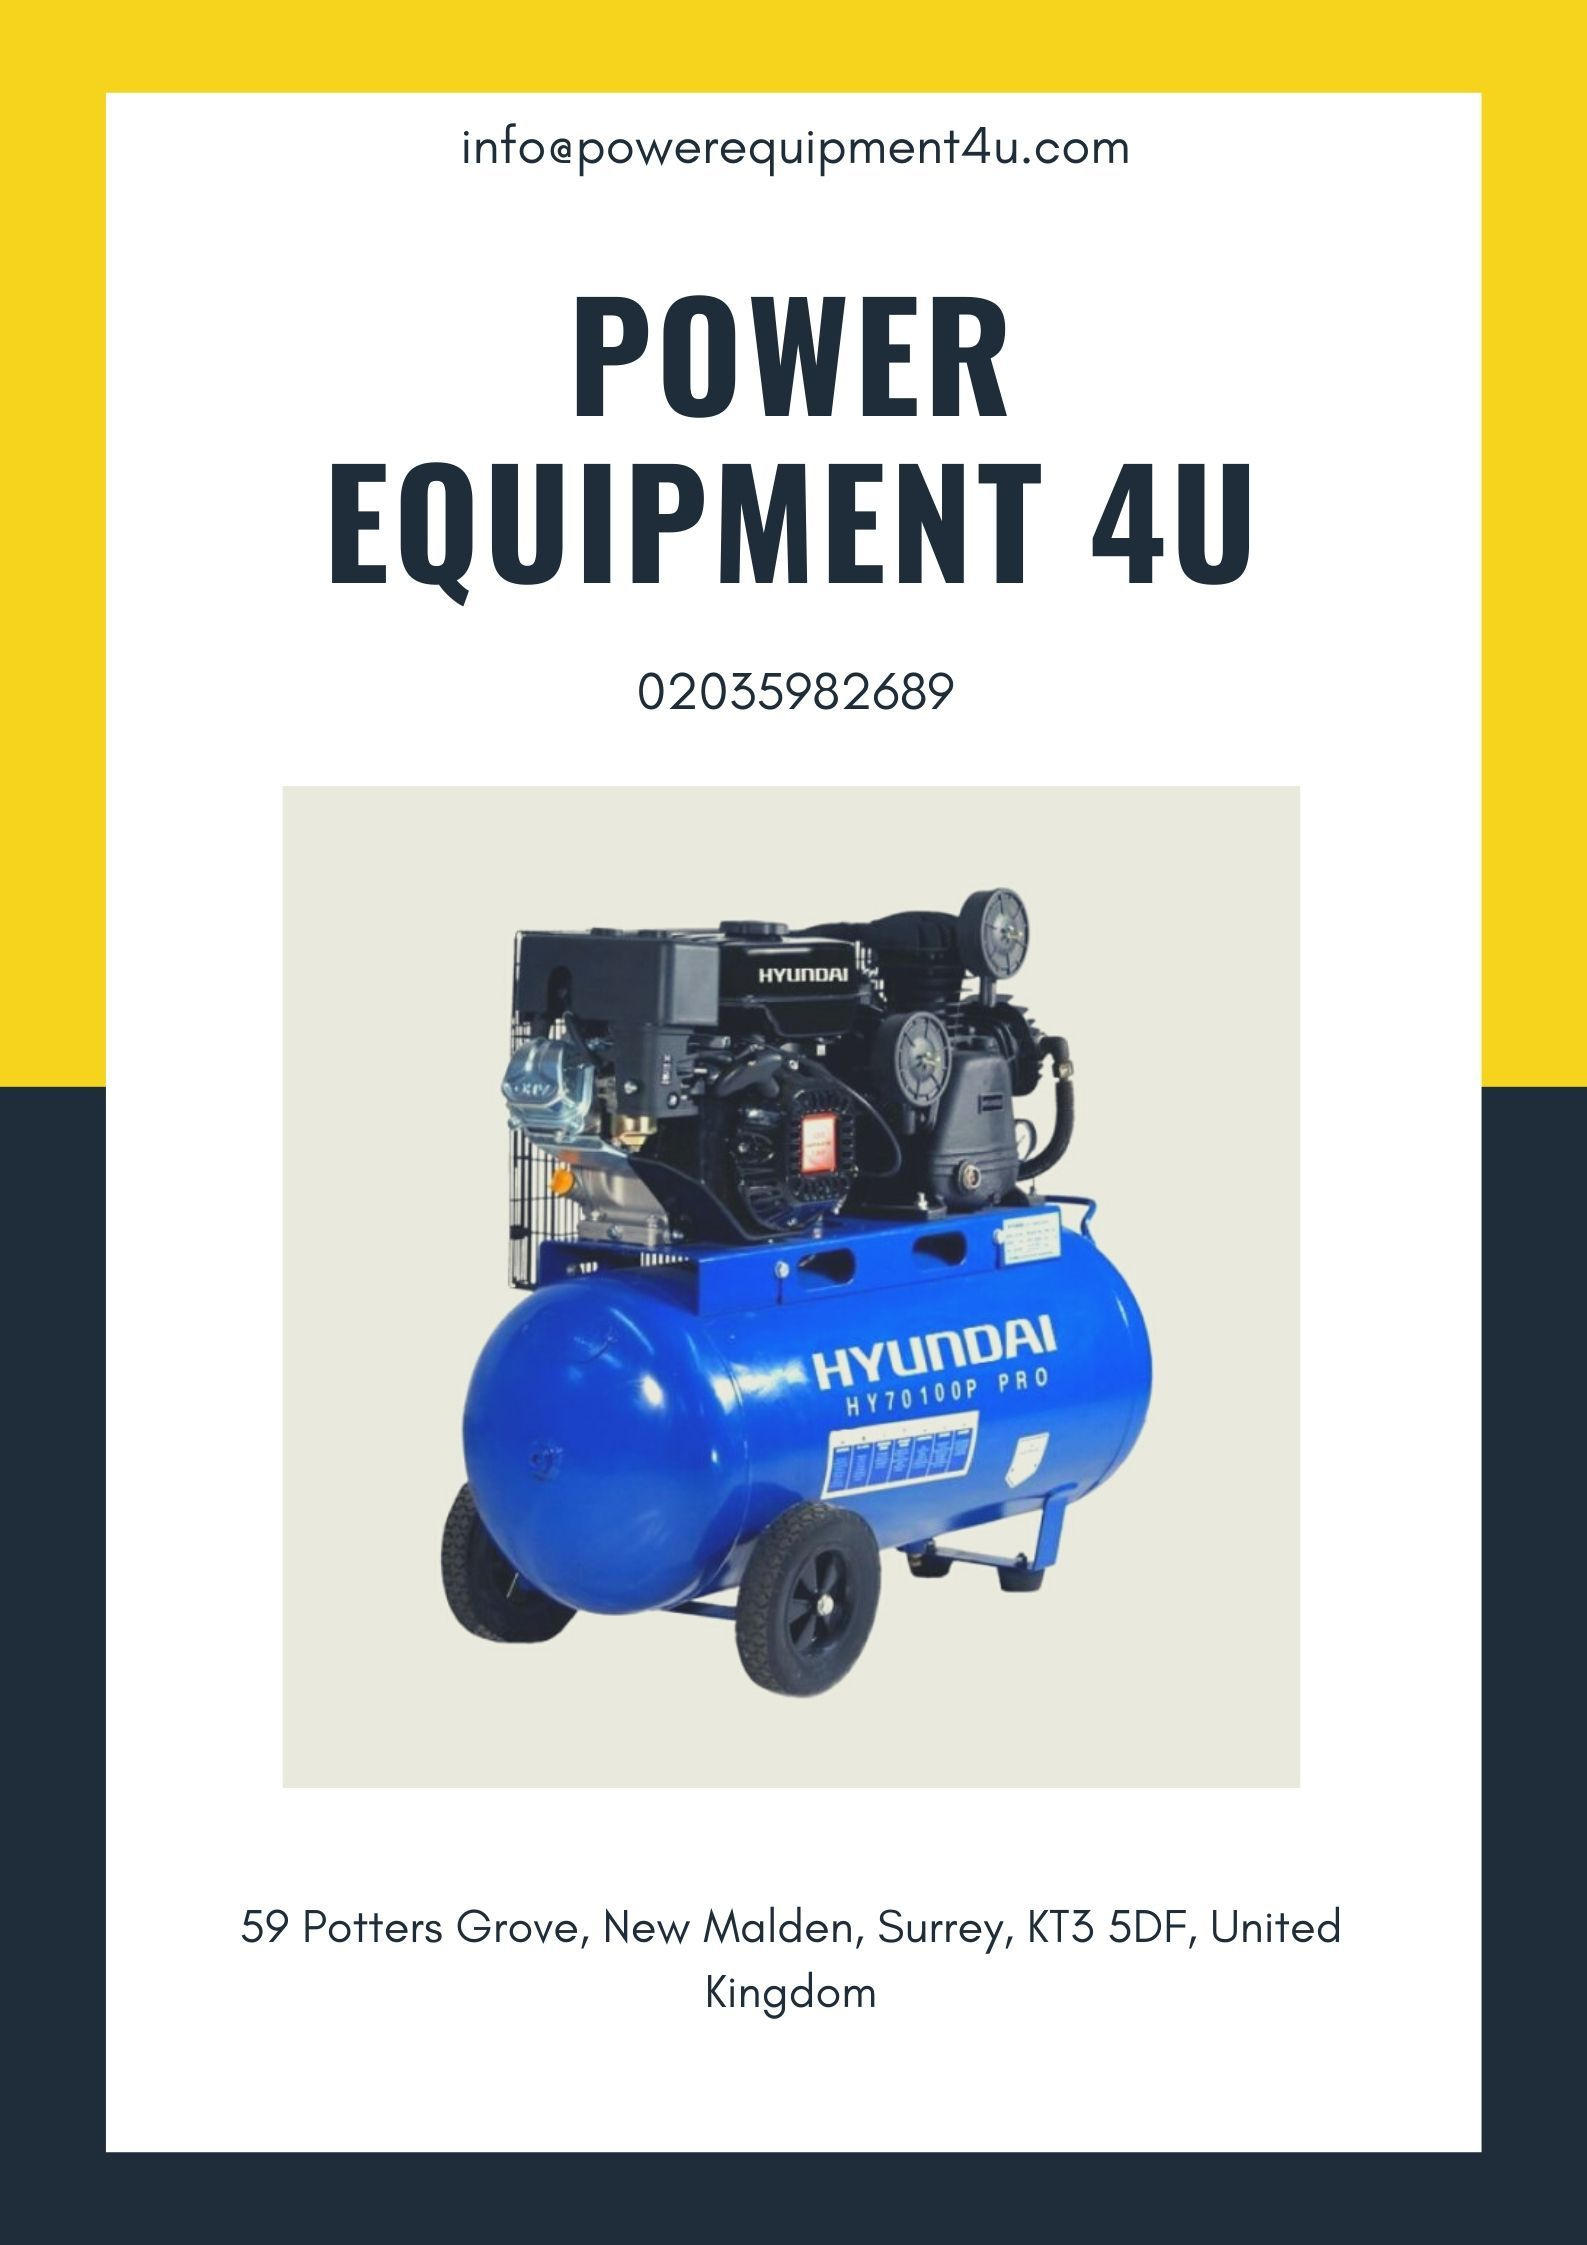 Pin on AIR COMPRESSORS